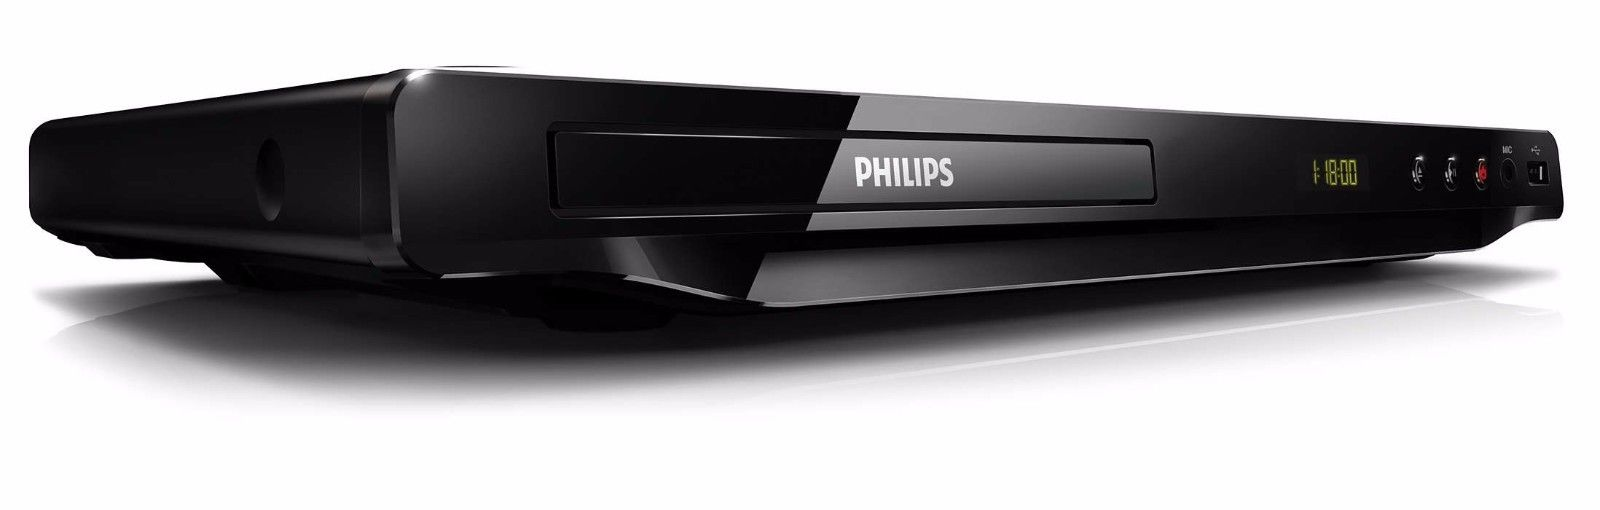 Philips Best 1080P All Region Free DVD Player Code Free PAL NTSC HDMI USB Karaok